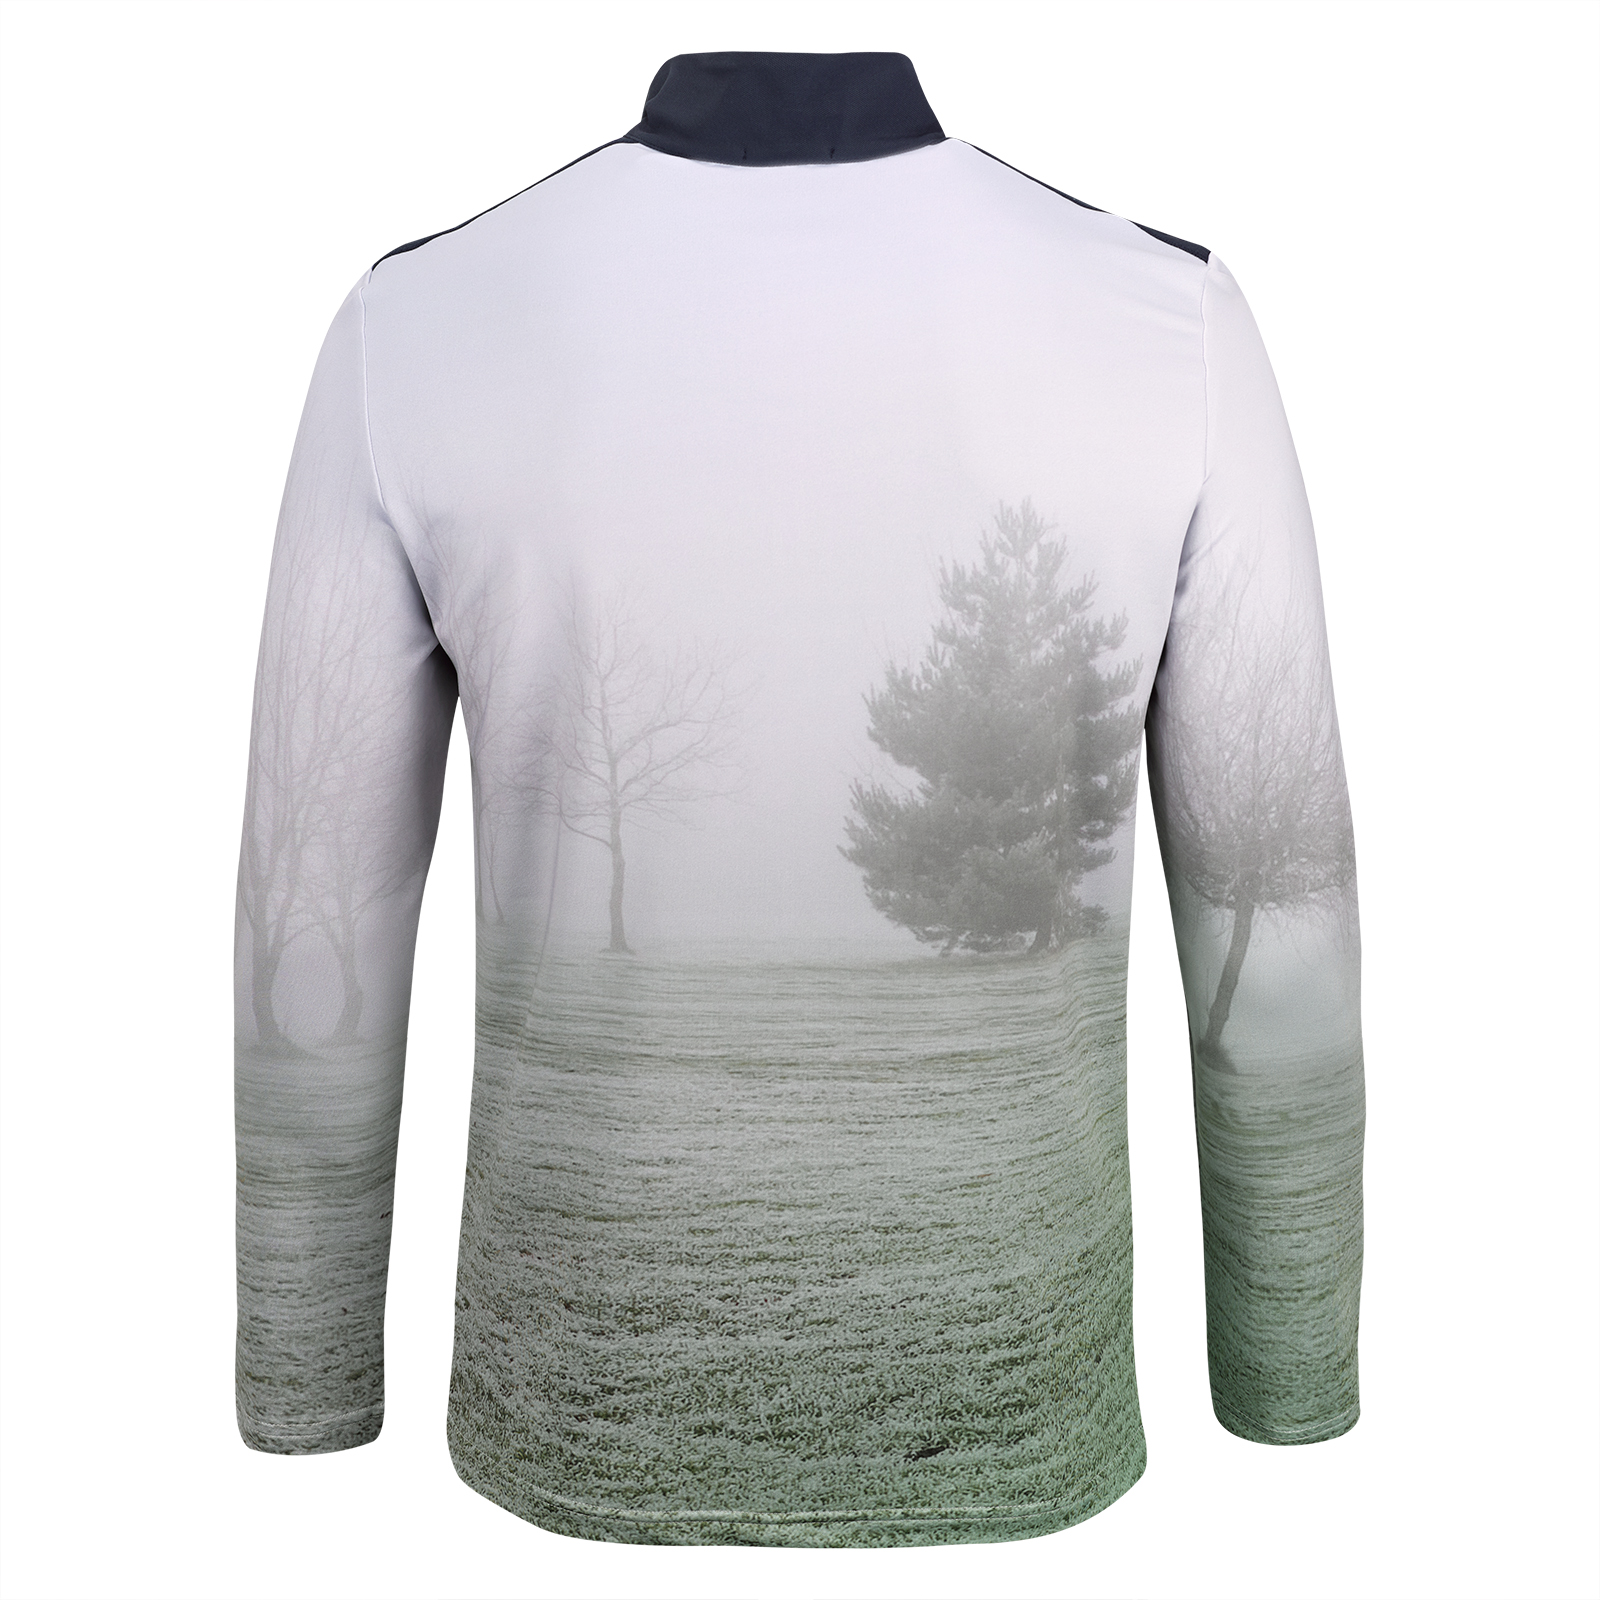 Herren Golf Funktionstroyer mit Moisture Management und modischem Allover-Print